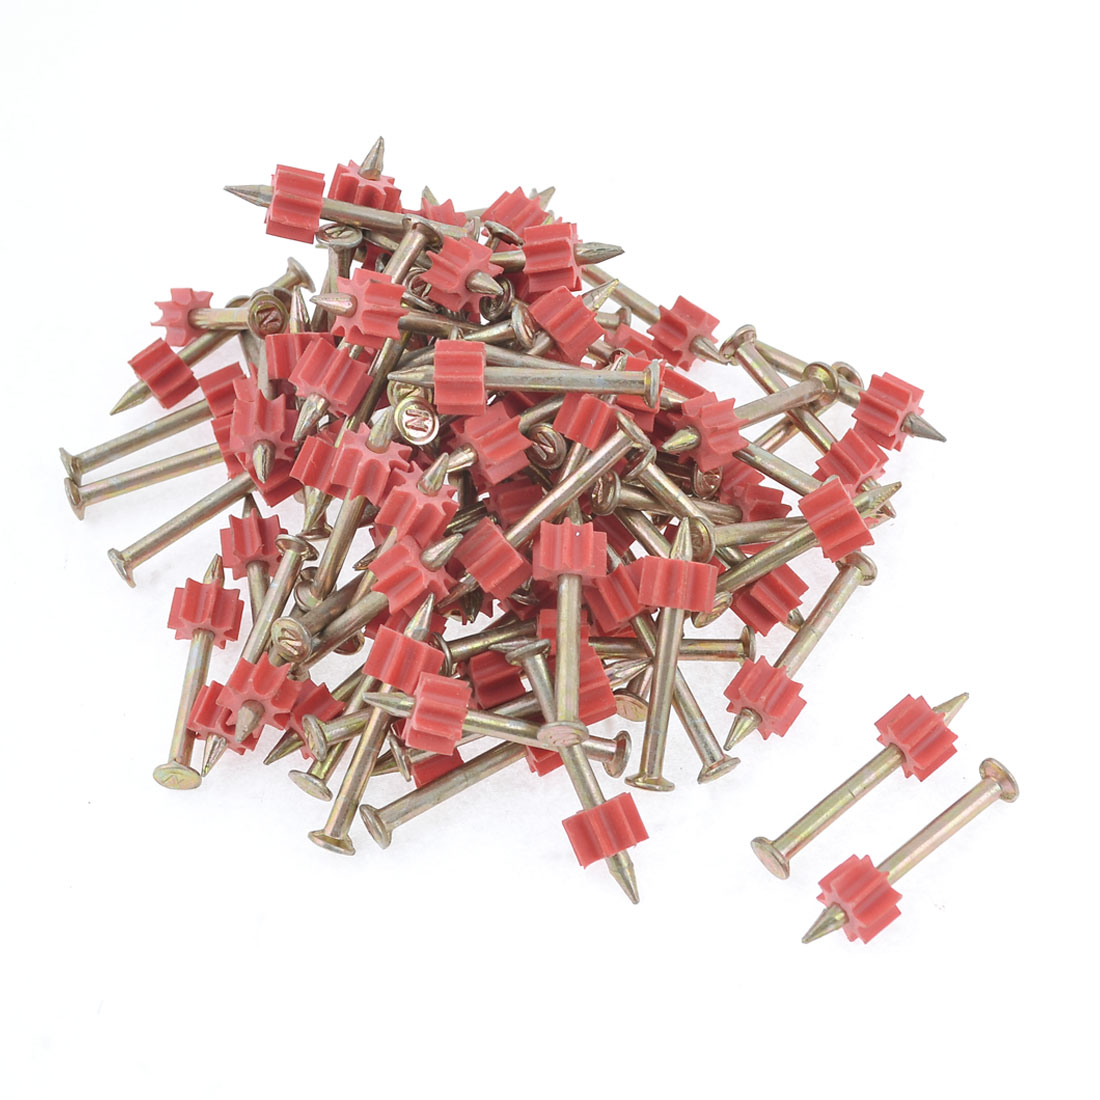 90 Pcs 3mm Dia Shank 34mm Length Power Hammer Drive Pins Fasteners